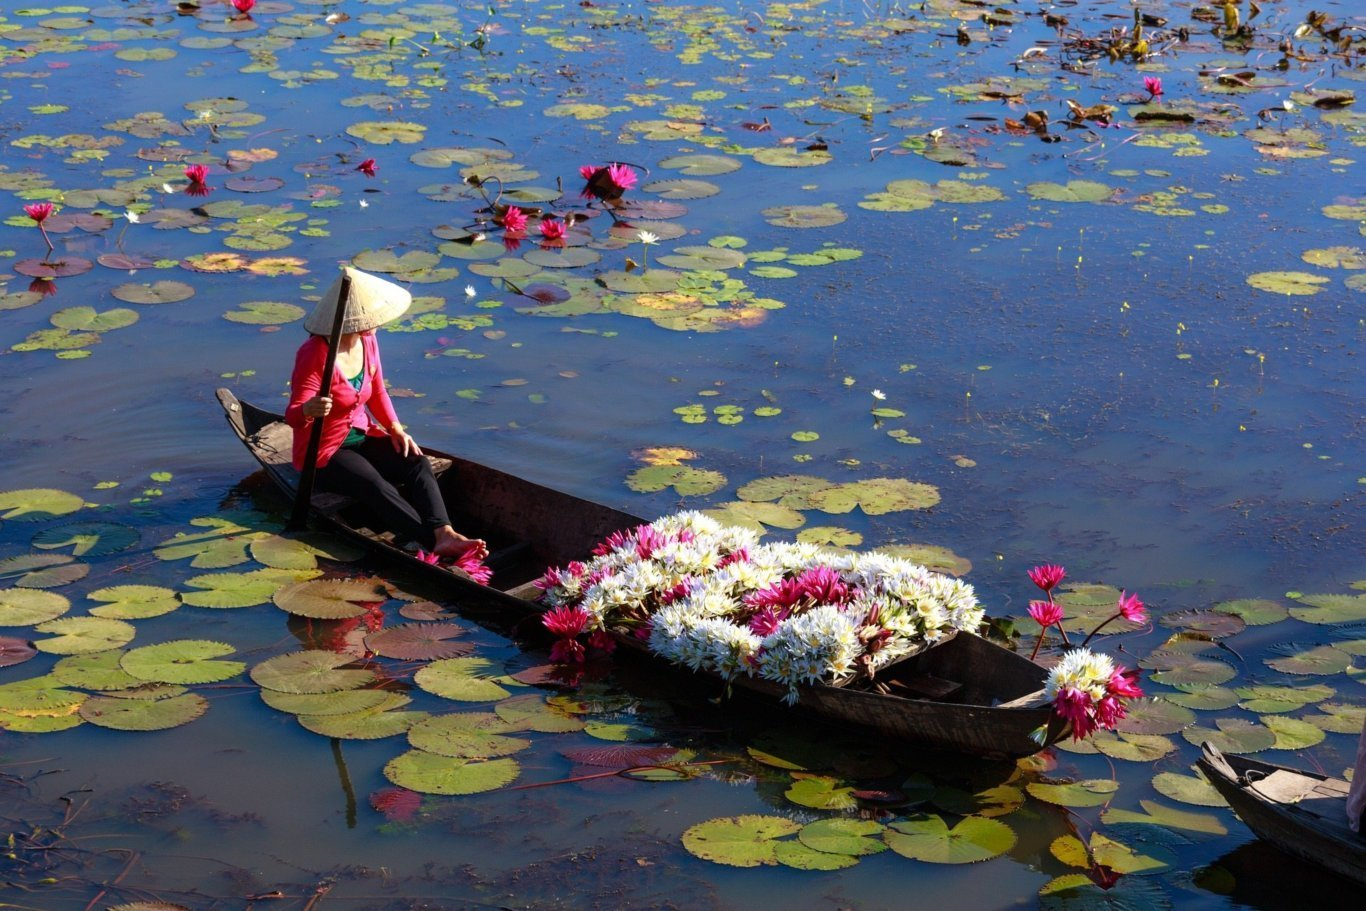 7-Day A Glimpse of Luxury in Vietnam - Vietnam Itinerary